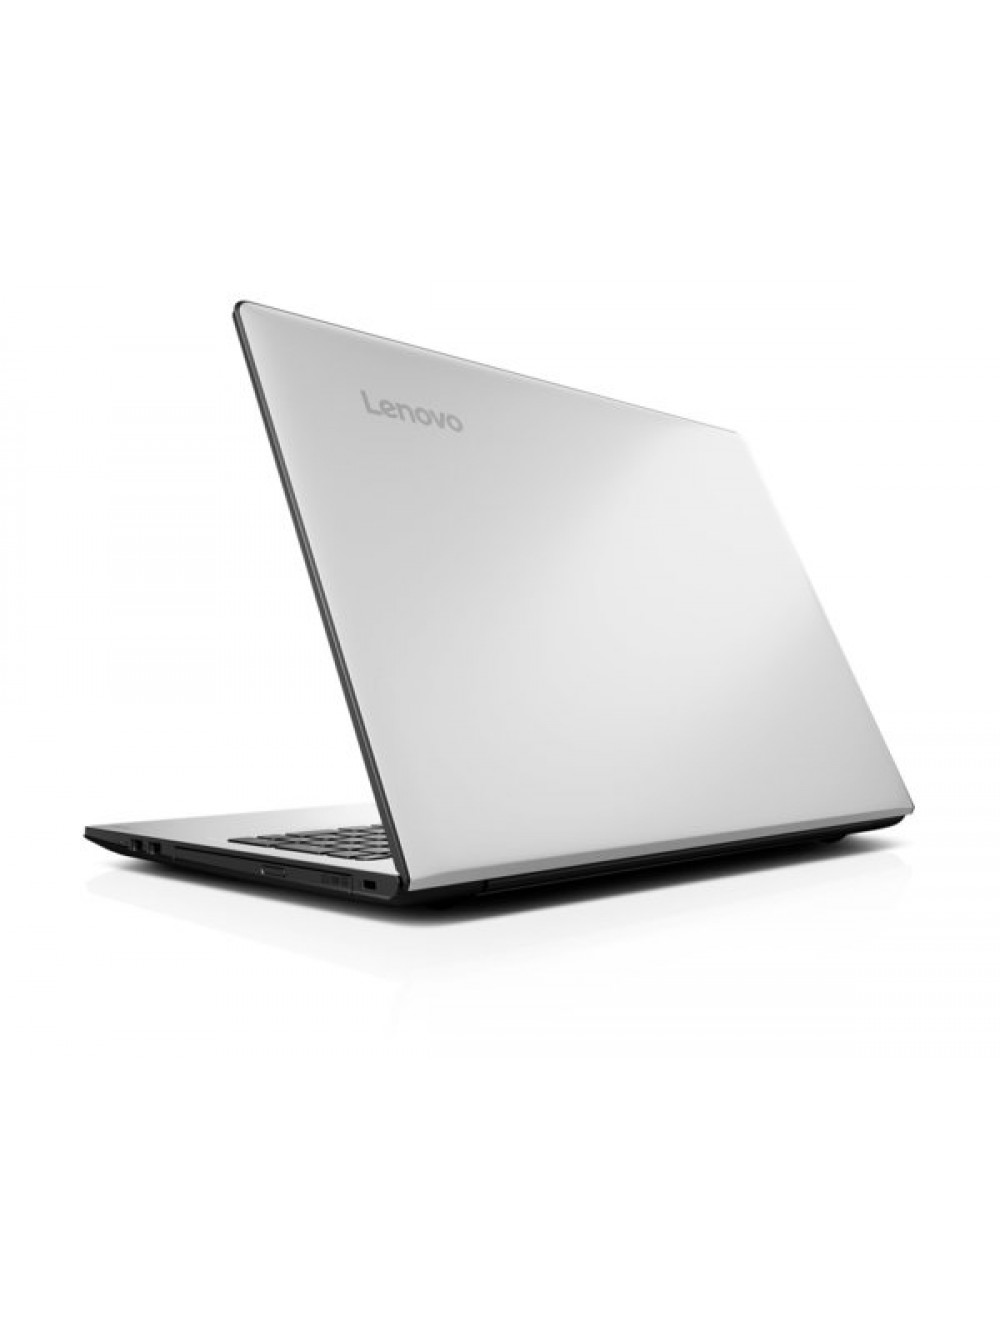 Lenovo IdeaPad Used Laptop Price in Pakistan